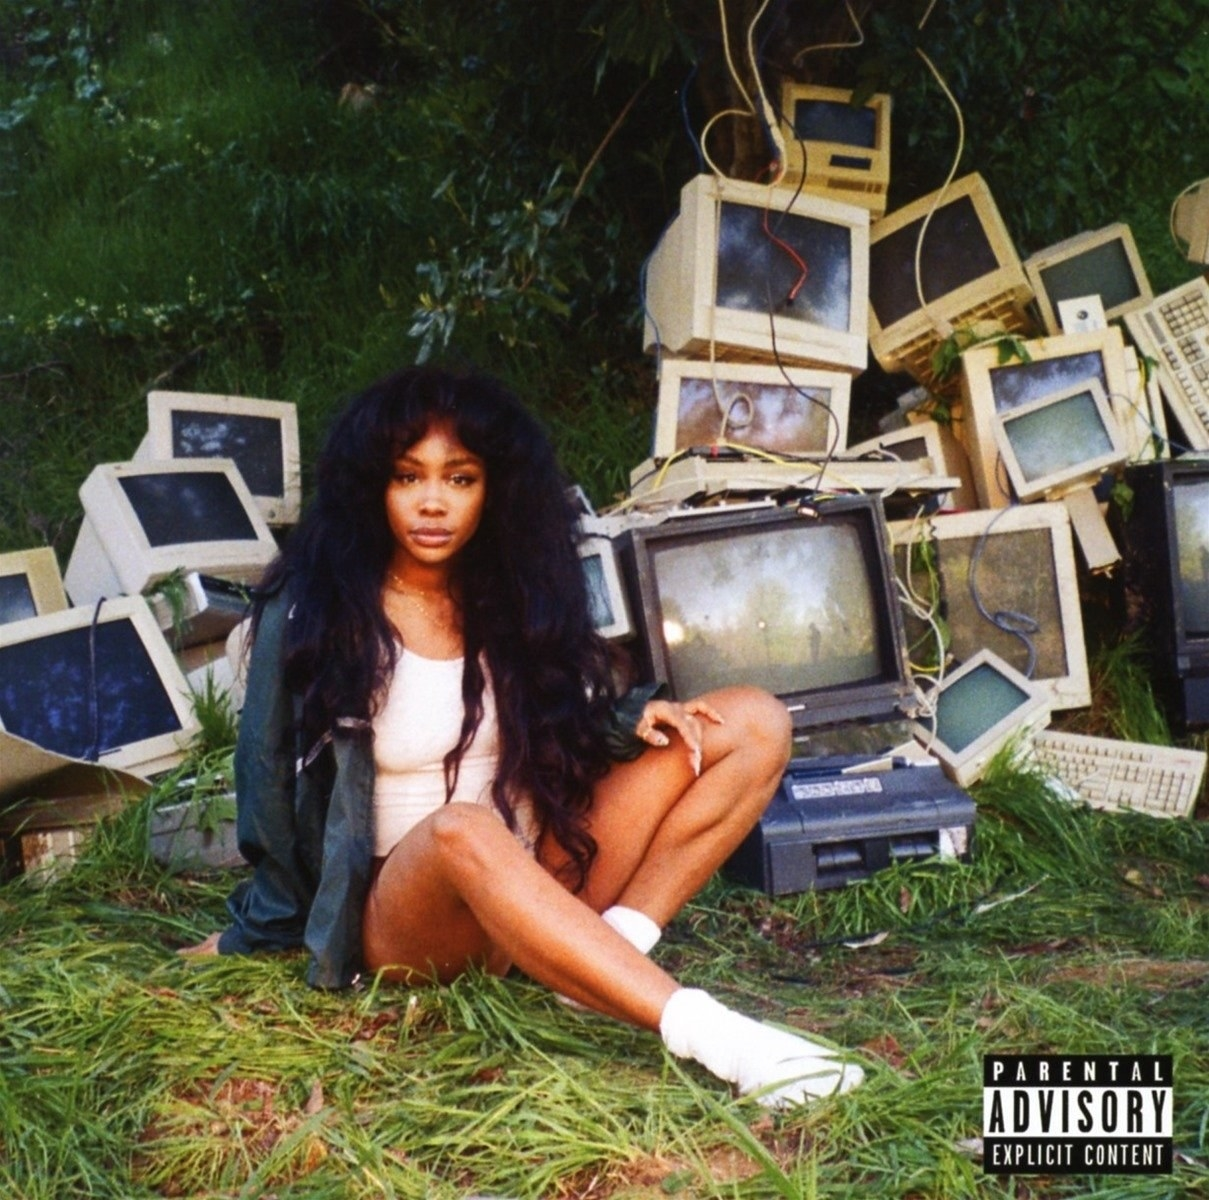 SZA sitting in the grass surrounded by a slew of broken computers.